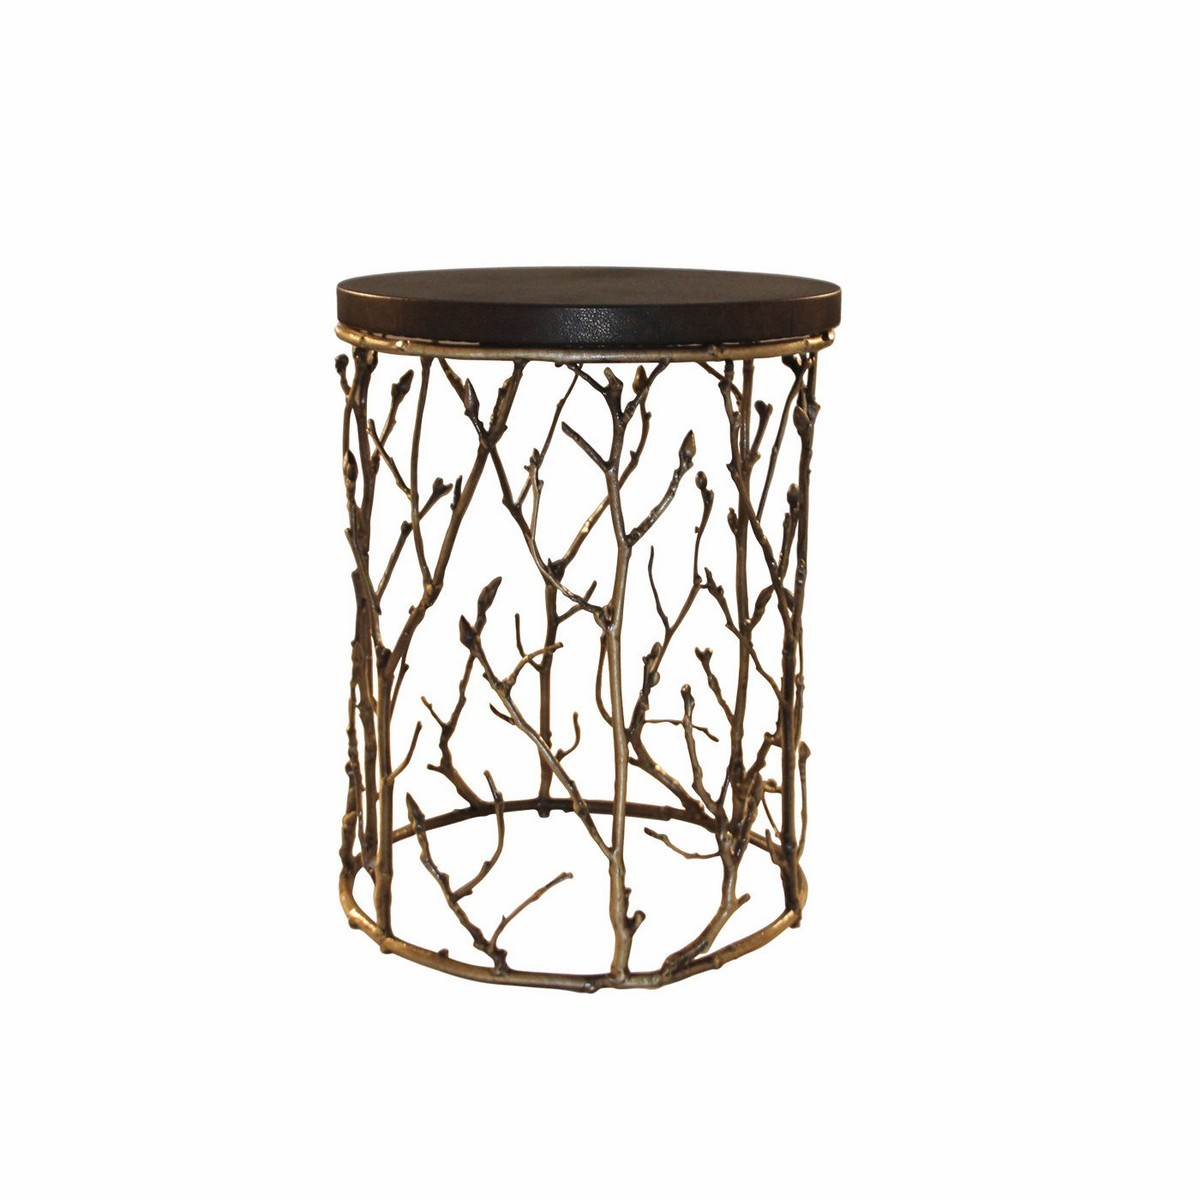 Top Modern Side Tables side tables Top Modern Side Tables enchanted2